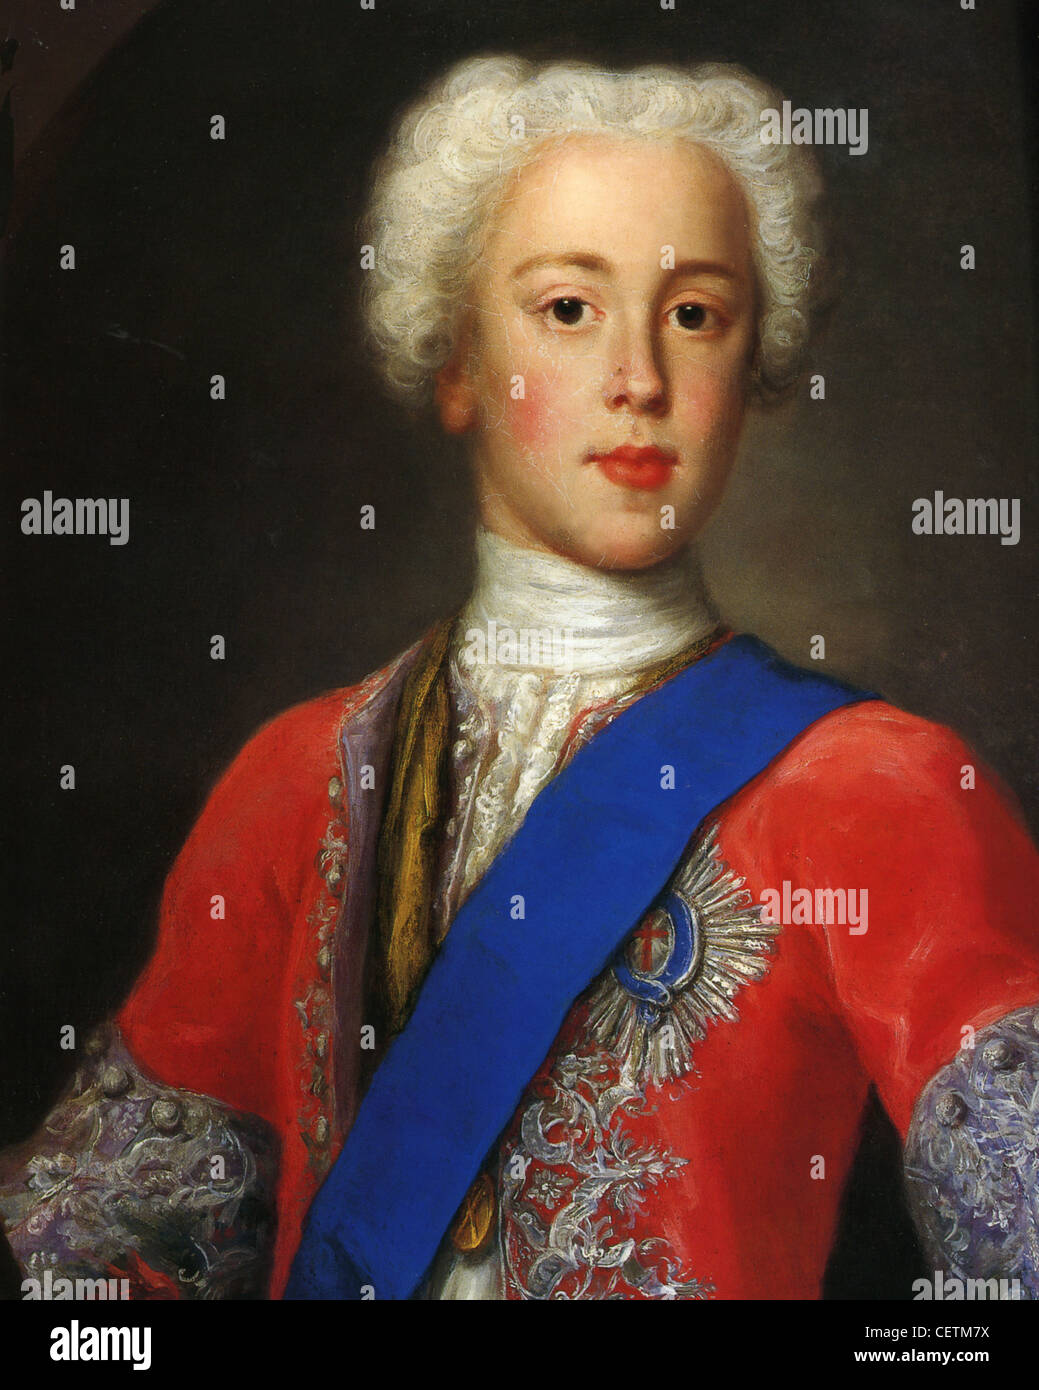 BONNIE PRINCE CHARLIE - Charles Edward Stuart (1720-1788) Jacobite pretender to the throne of Great Britain - Stock Image